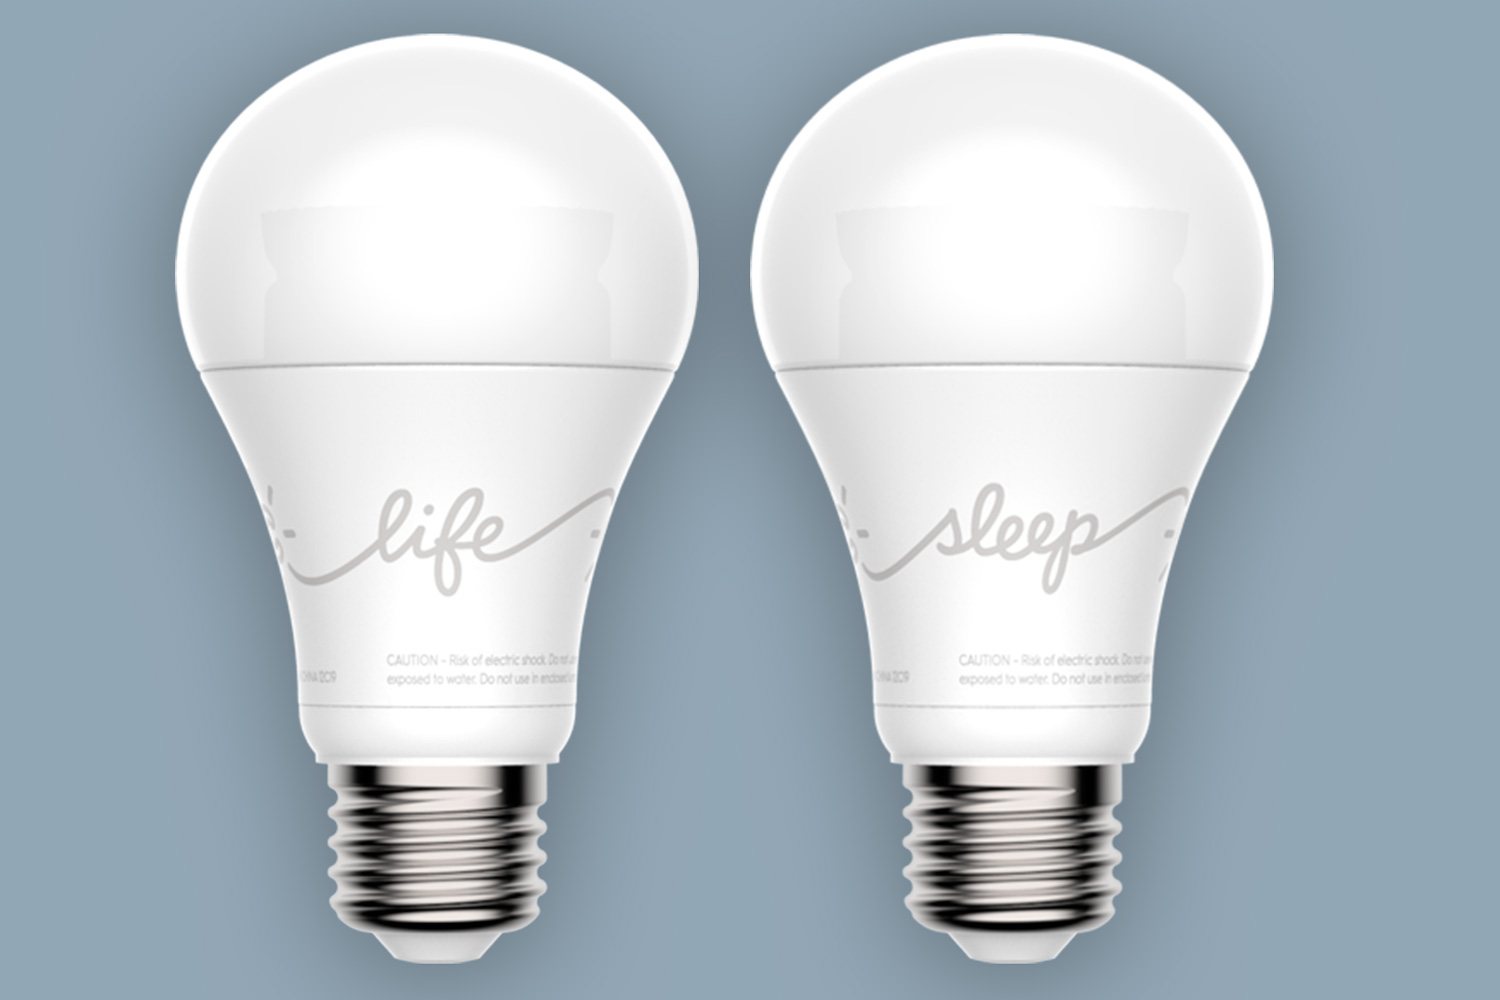 Need better sleep ge 39 s new smart led light bulbs adjust with your circadian rhythm Smart light bulbs